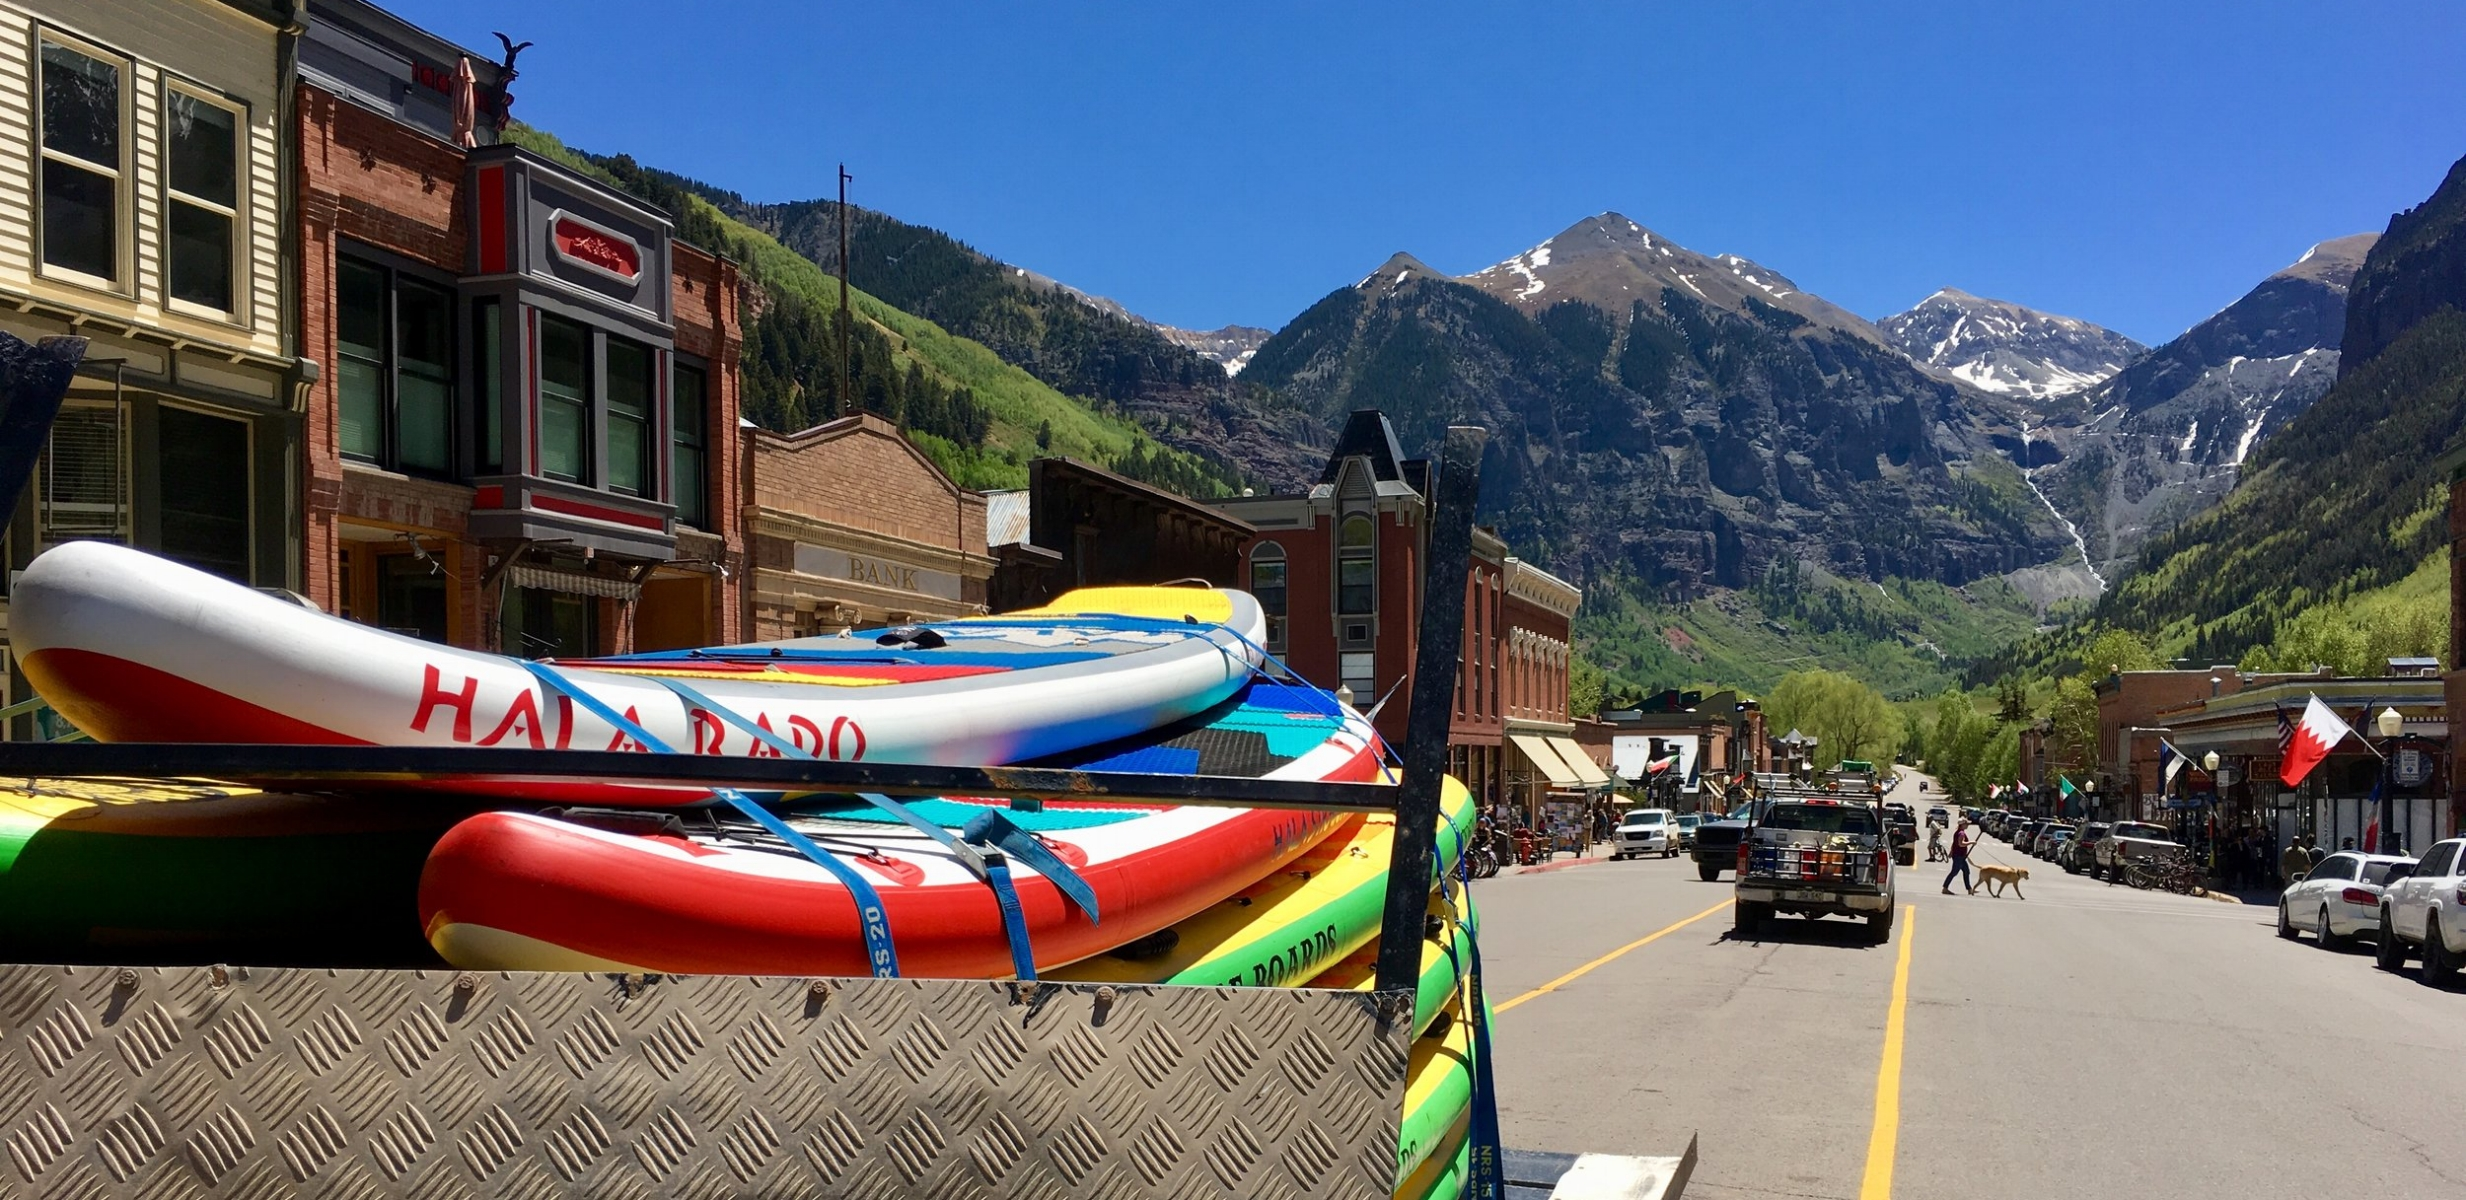 Telluride, Colorado guided SUP trip with Telluride Outside. Stand up paddle board lessons and rentals.